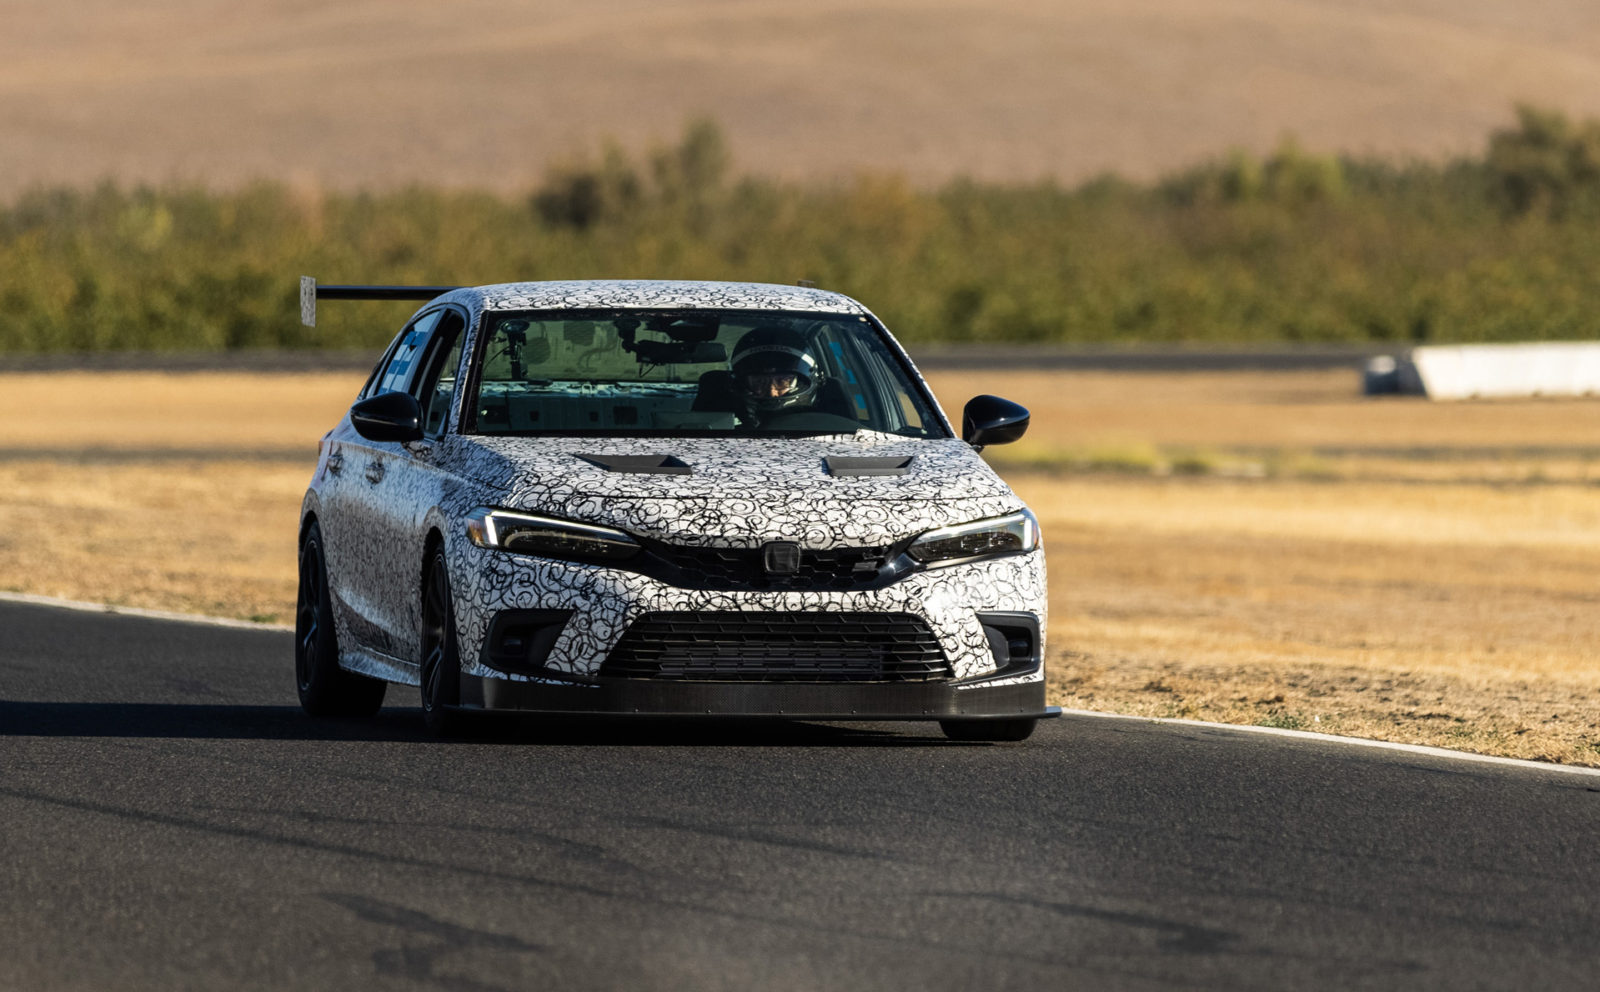 2022-honda-civic-si-coming-soon,-will-race-in-2021-25-hours-of-thunderhill